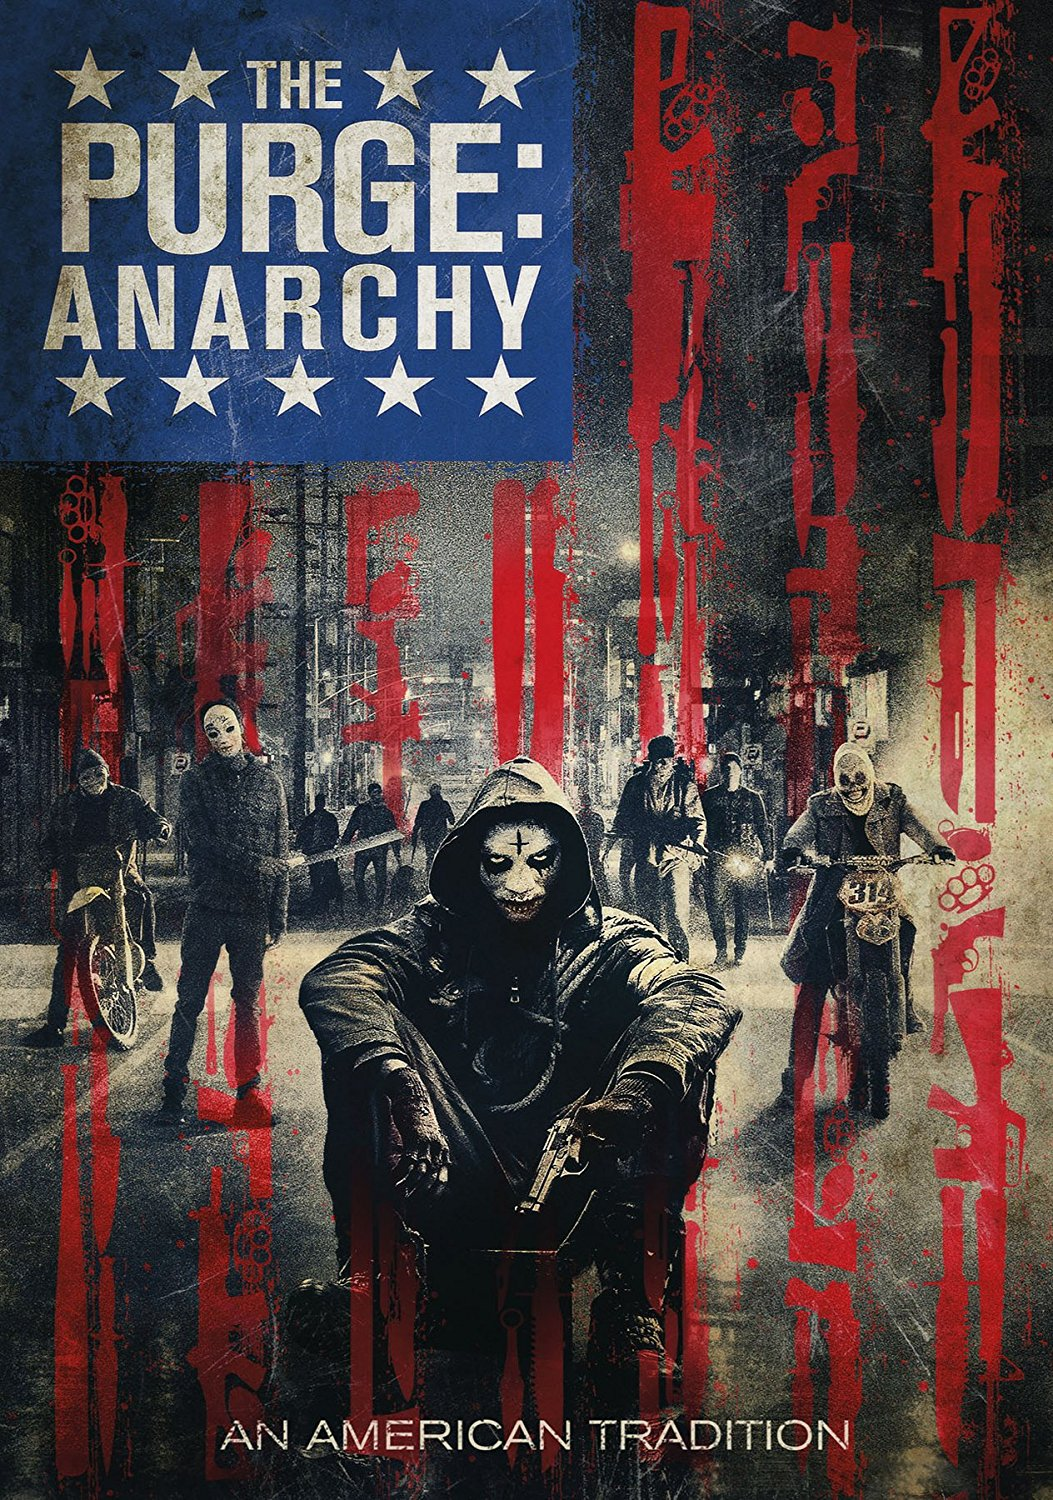 download The.Purge.Anarchy.German.2014.DVDRiP.x264.iNTERNAL-CiA